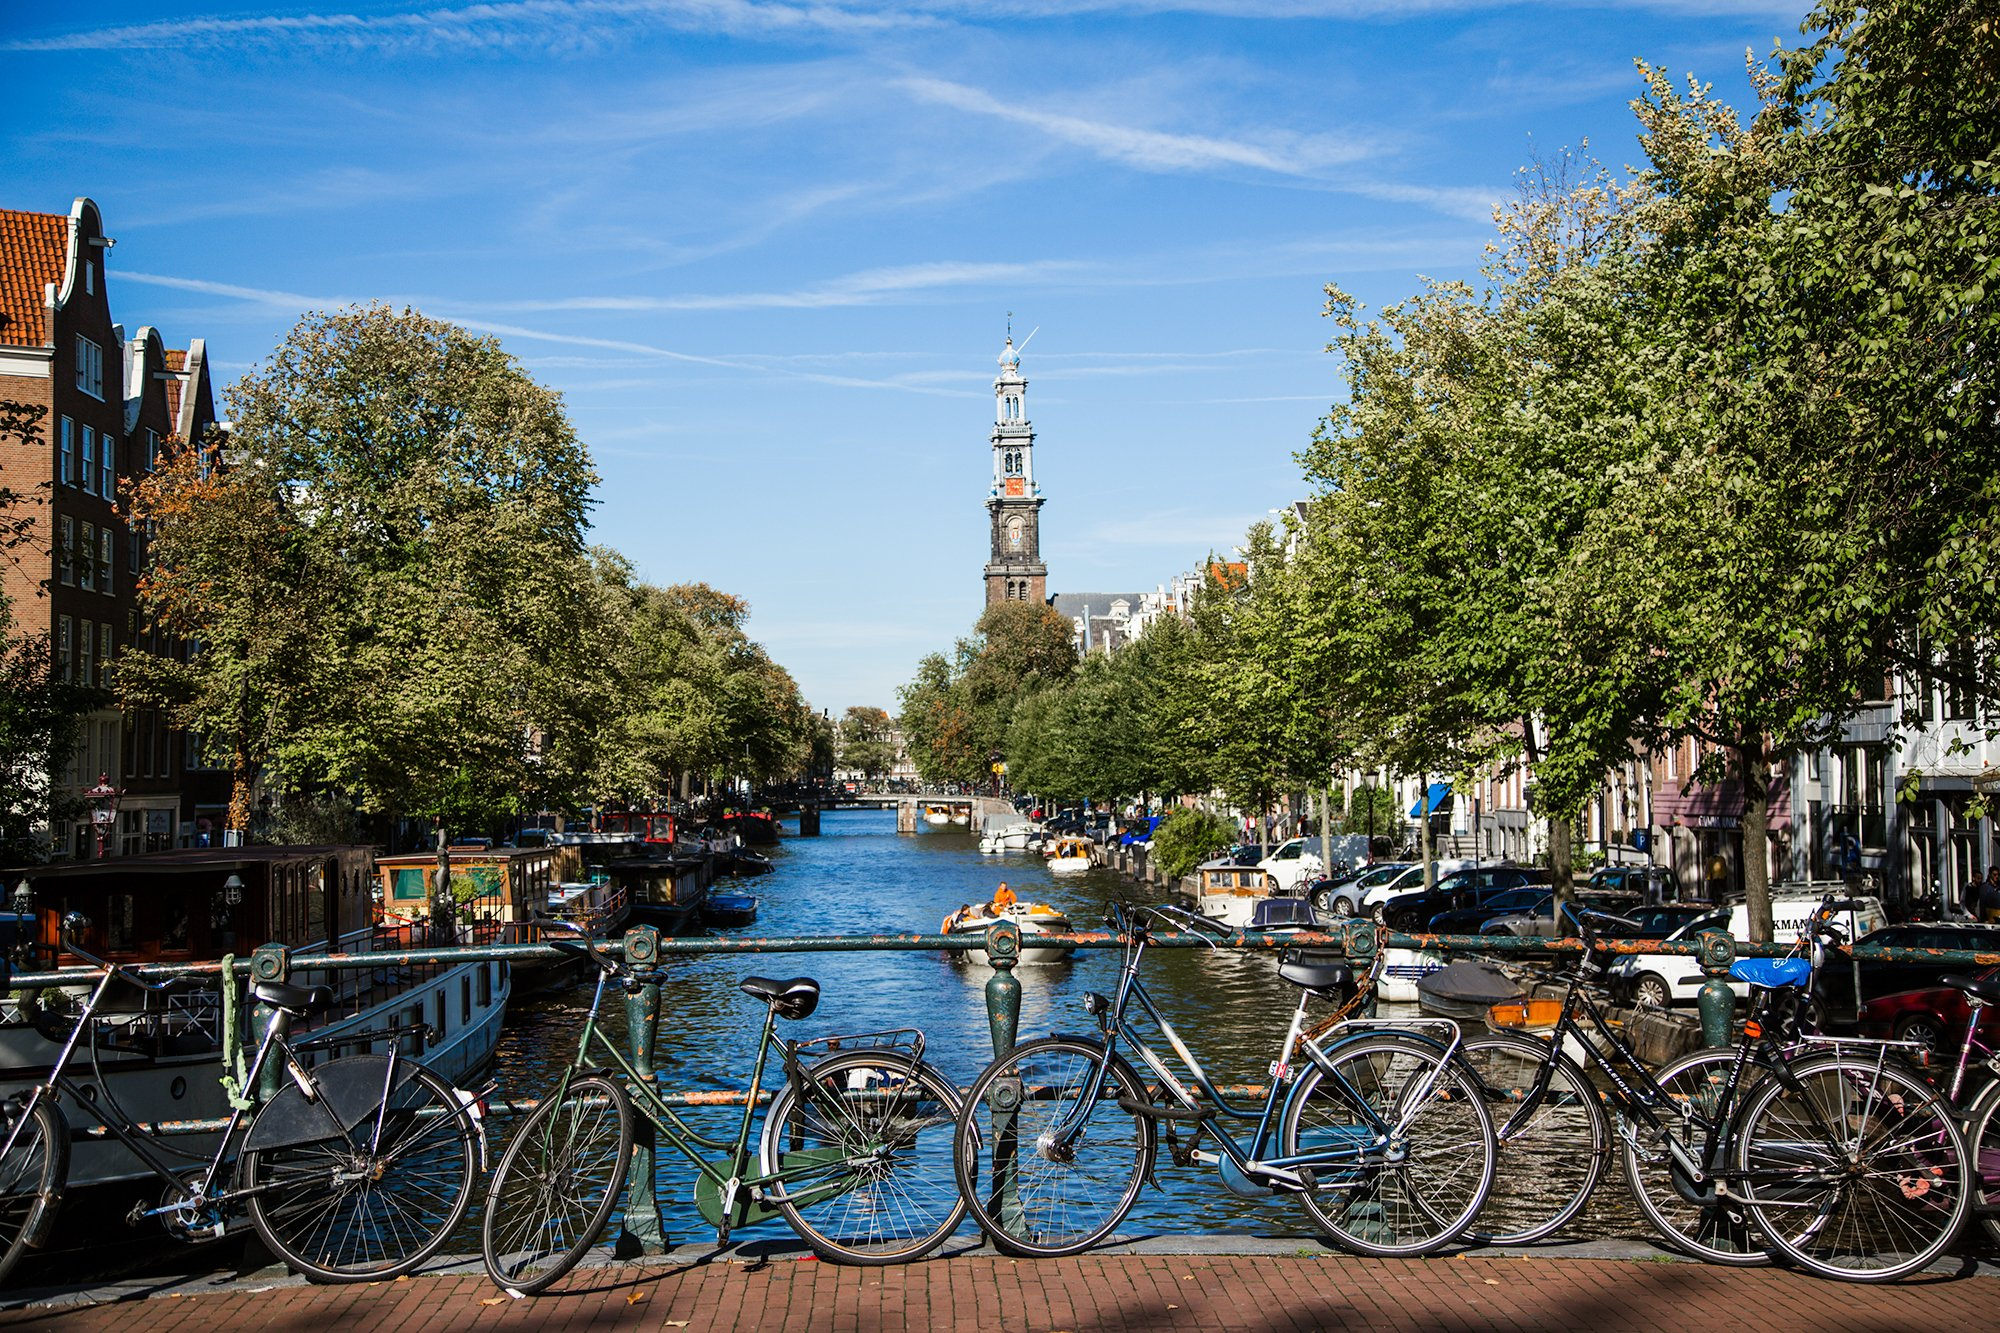 15 Unusual Things To Do In Amsterdam That Will Spark Your